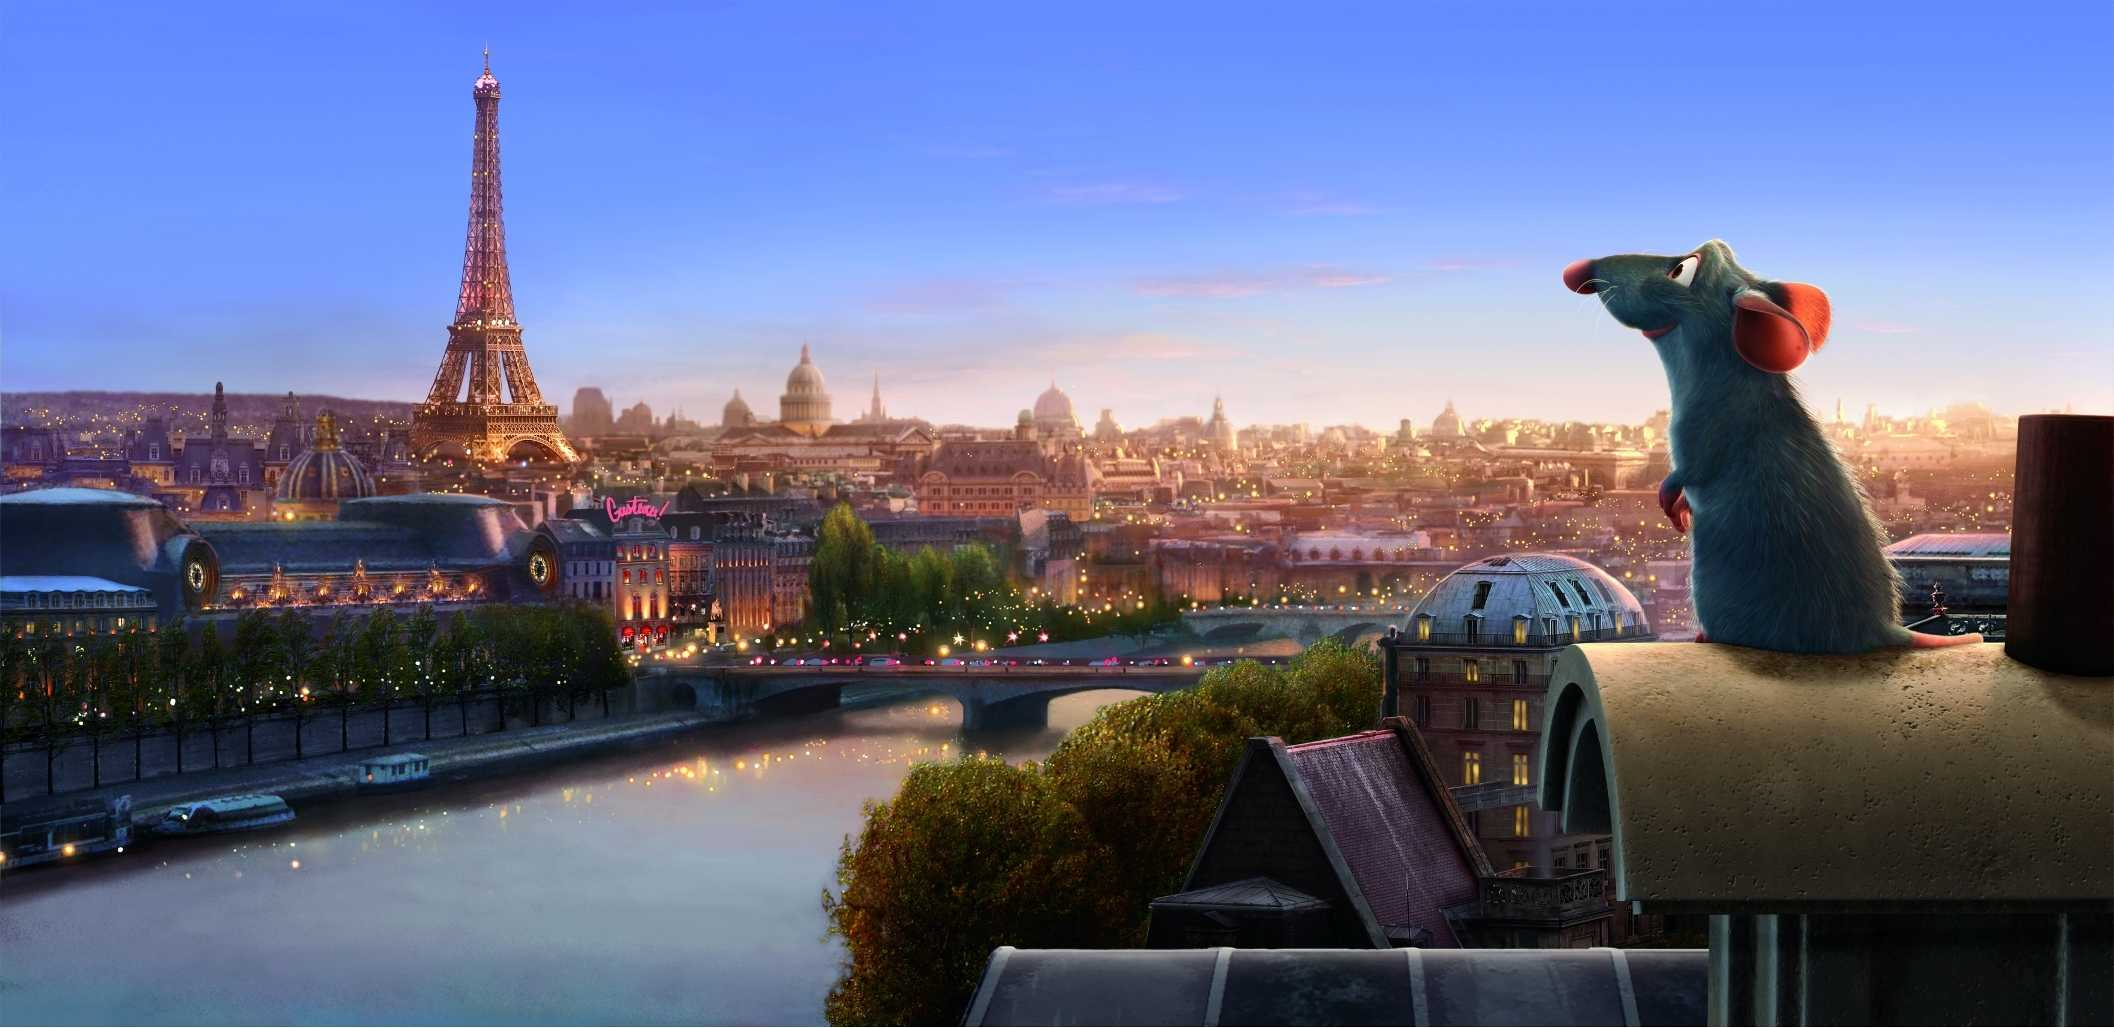 'Ratatouille' Attraction Heading To Disneyland Paris